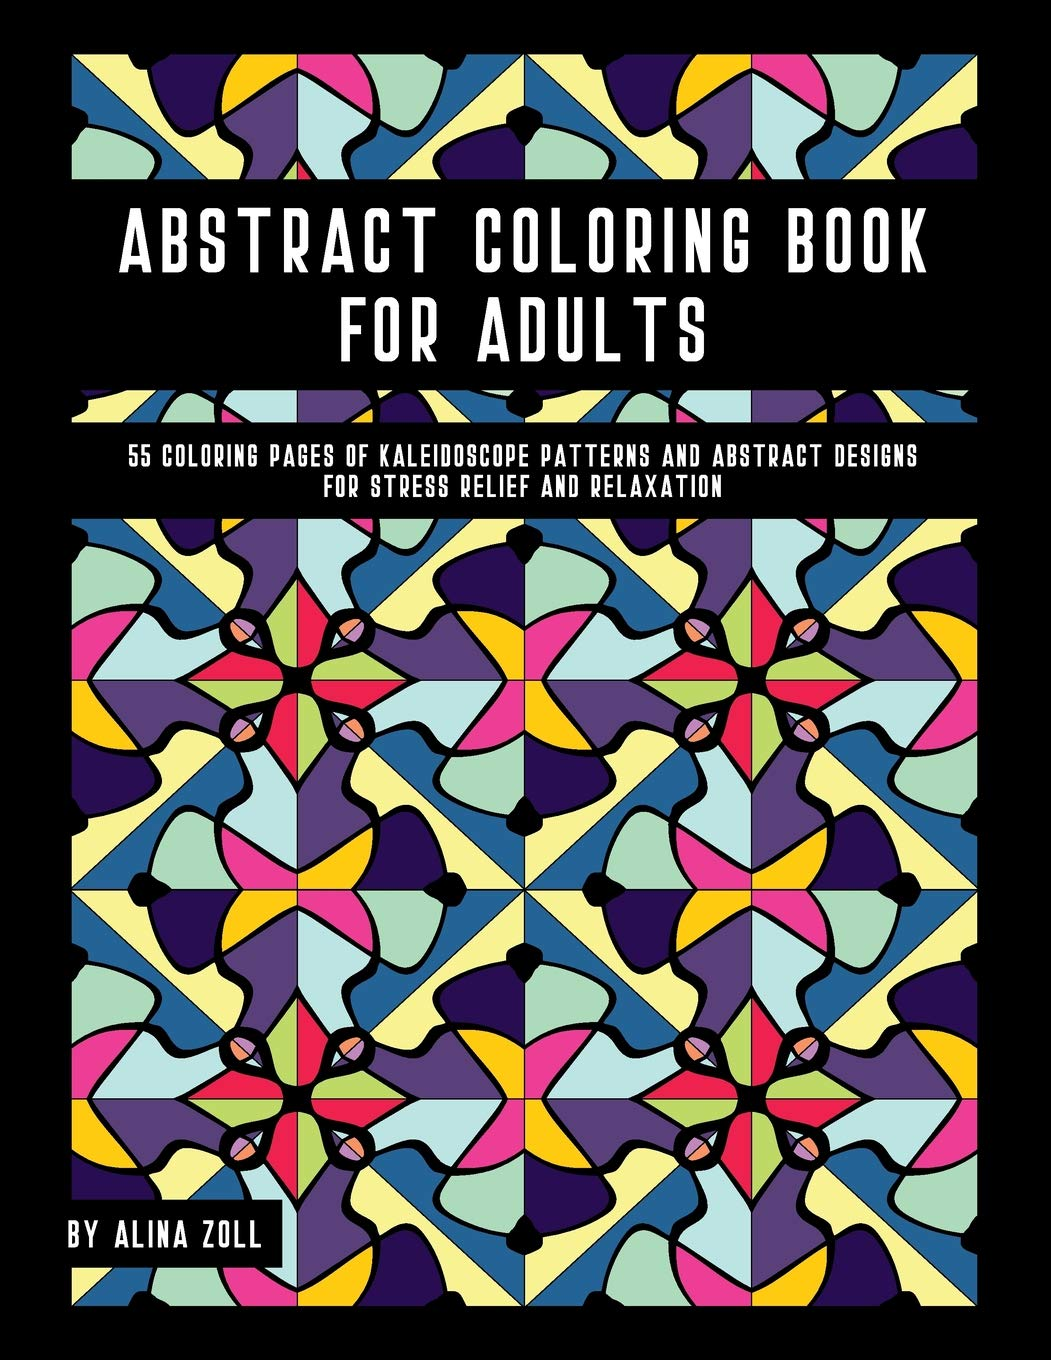 Amazon.com: Abstract Coloring Book For Adults: 55 Coloring Pages